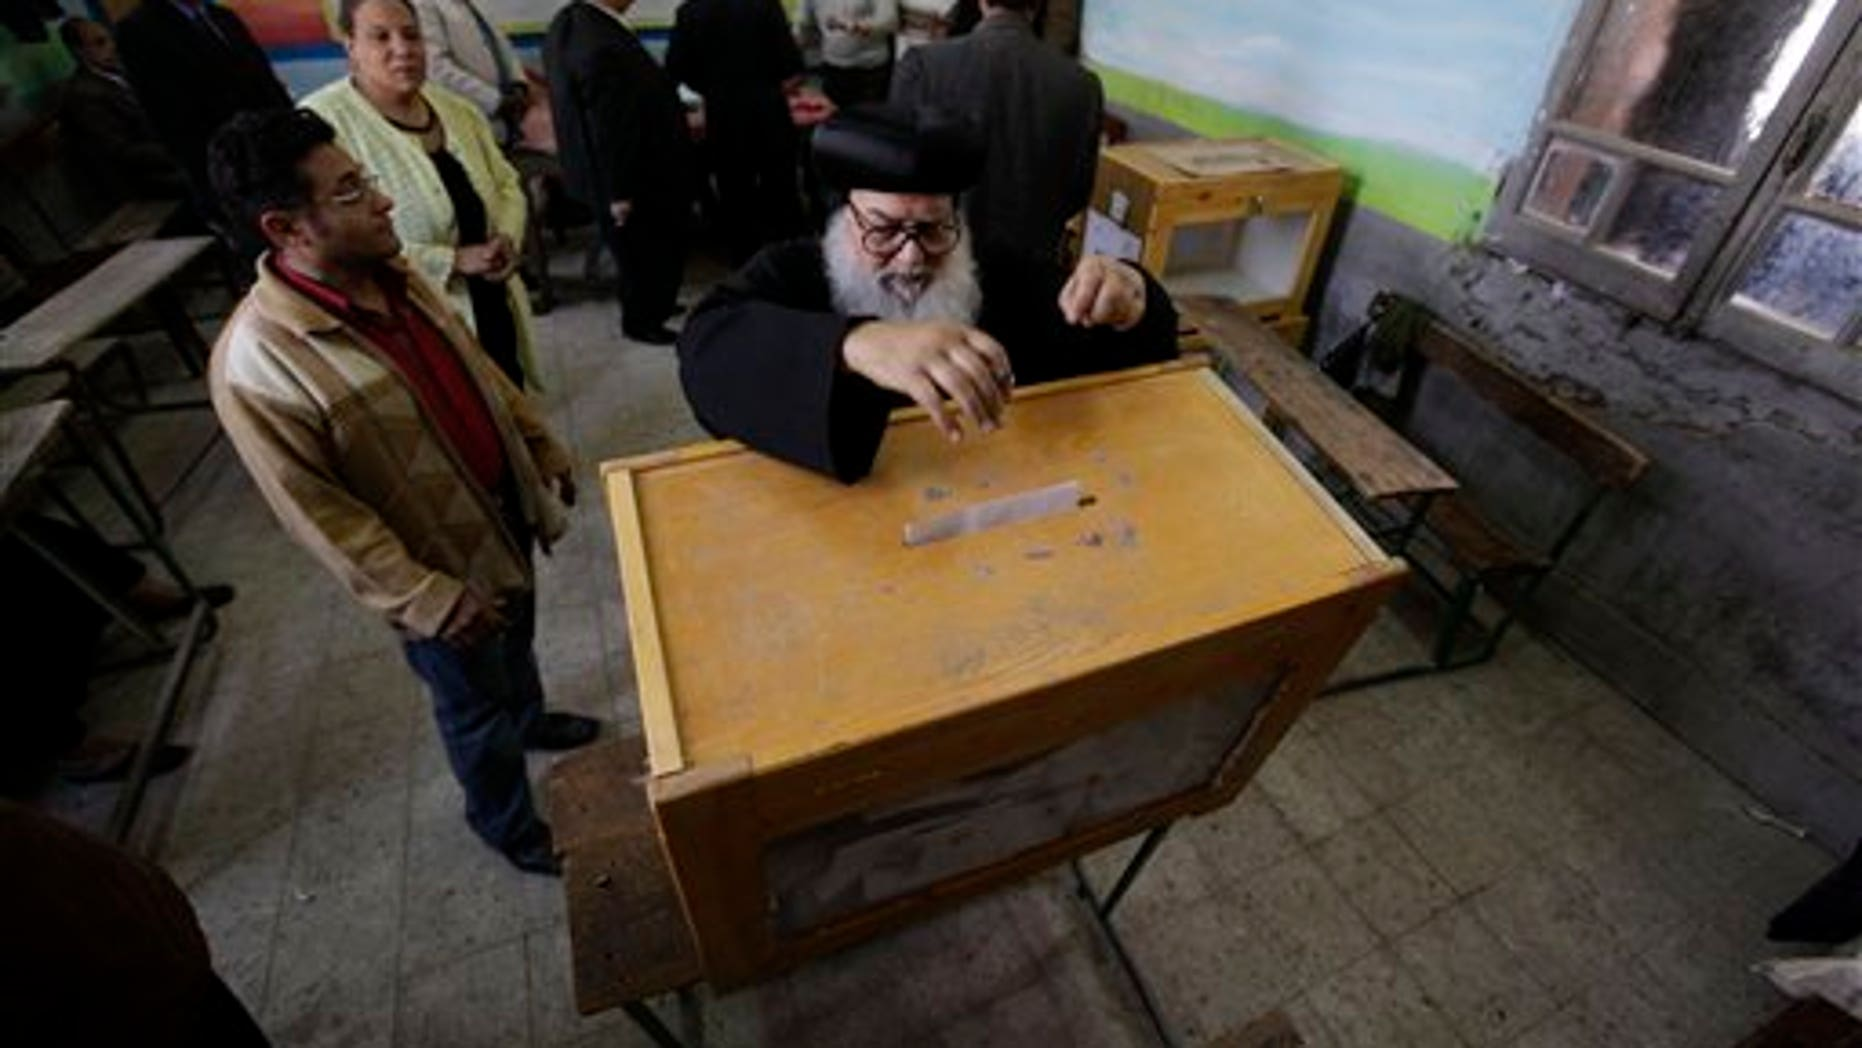 March 19: An Egyptian priest casts his vote at a polling station in Cairo, Egypt on referendum on constitutional amendments. (AP)